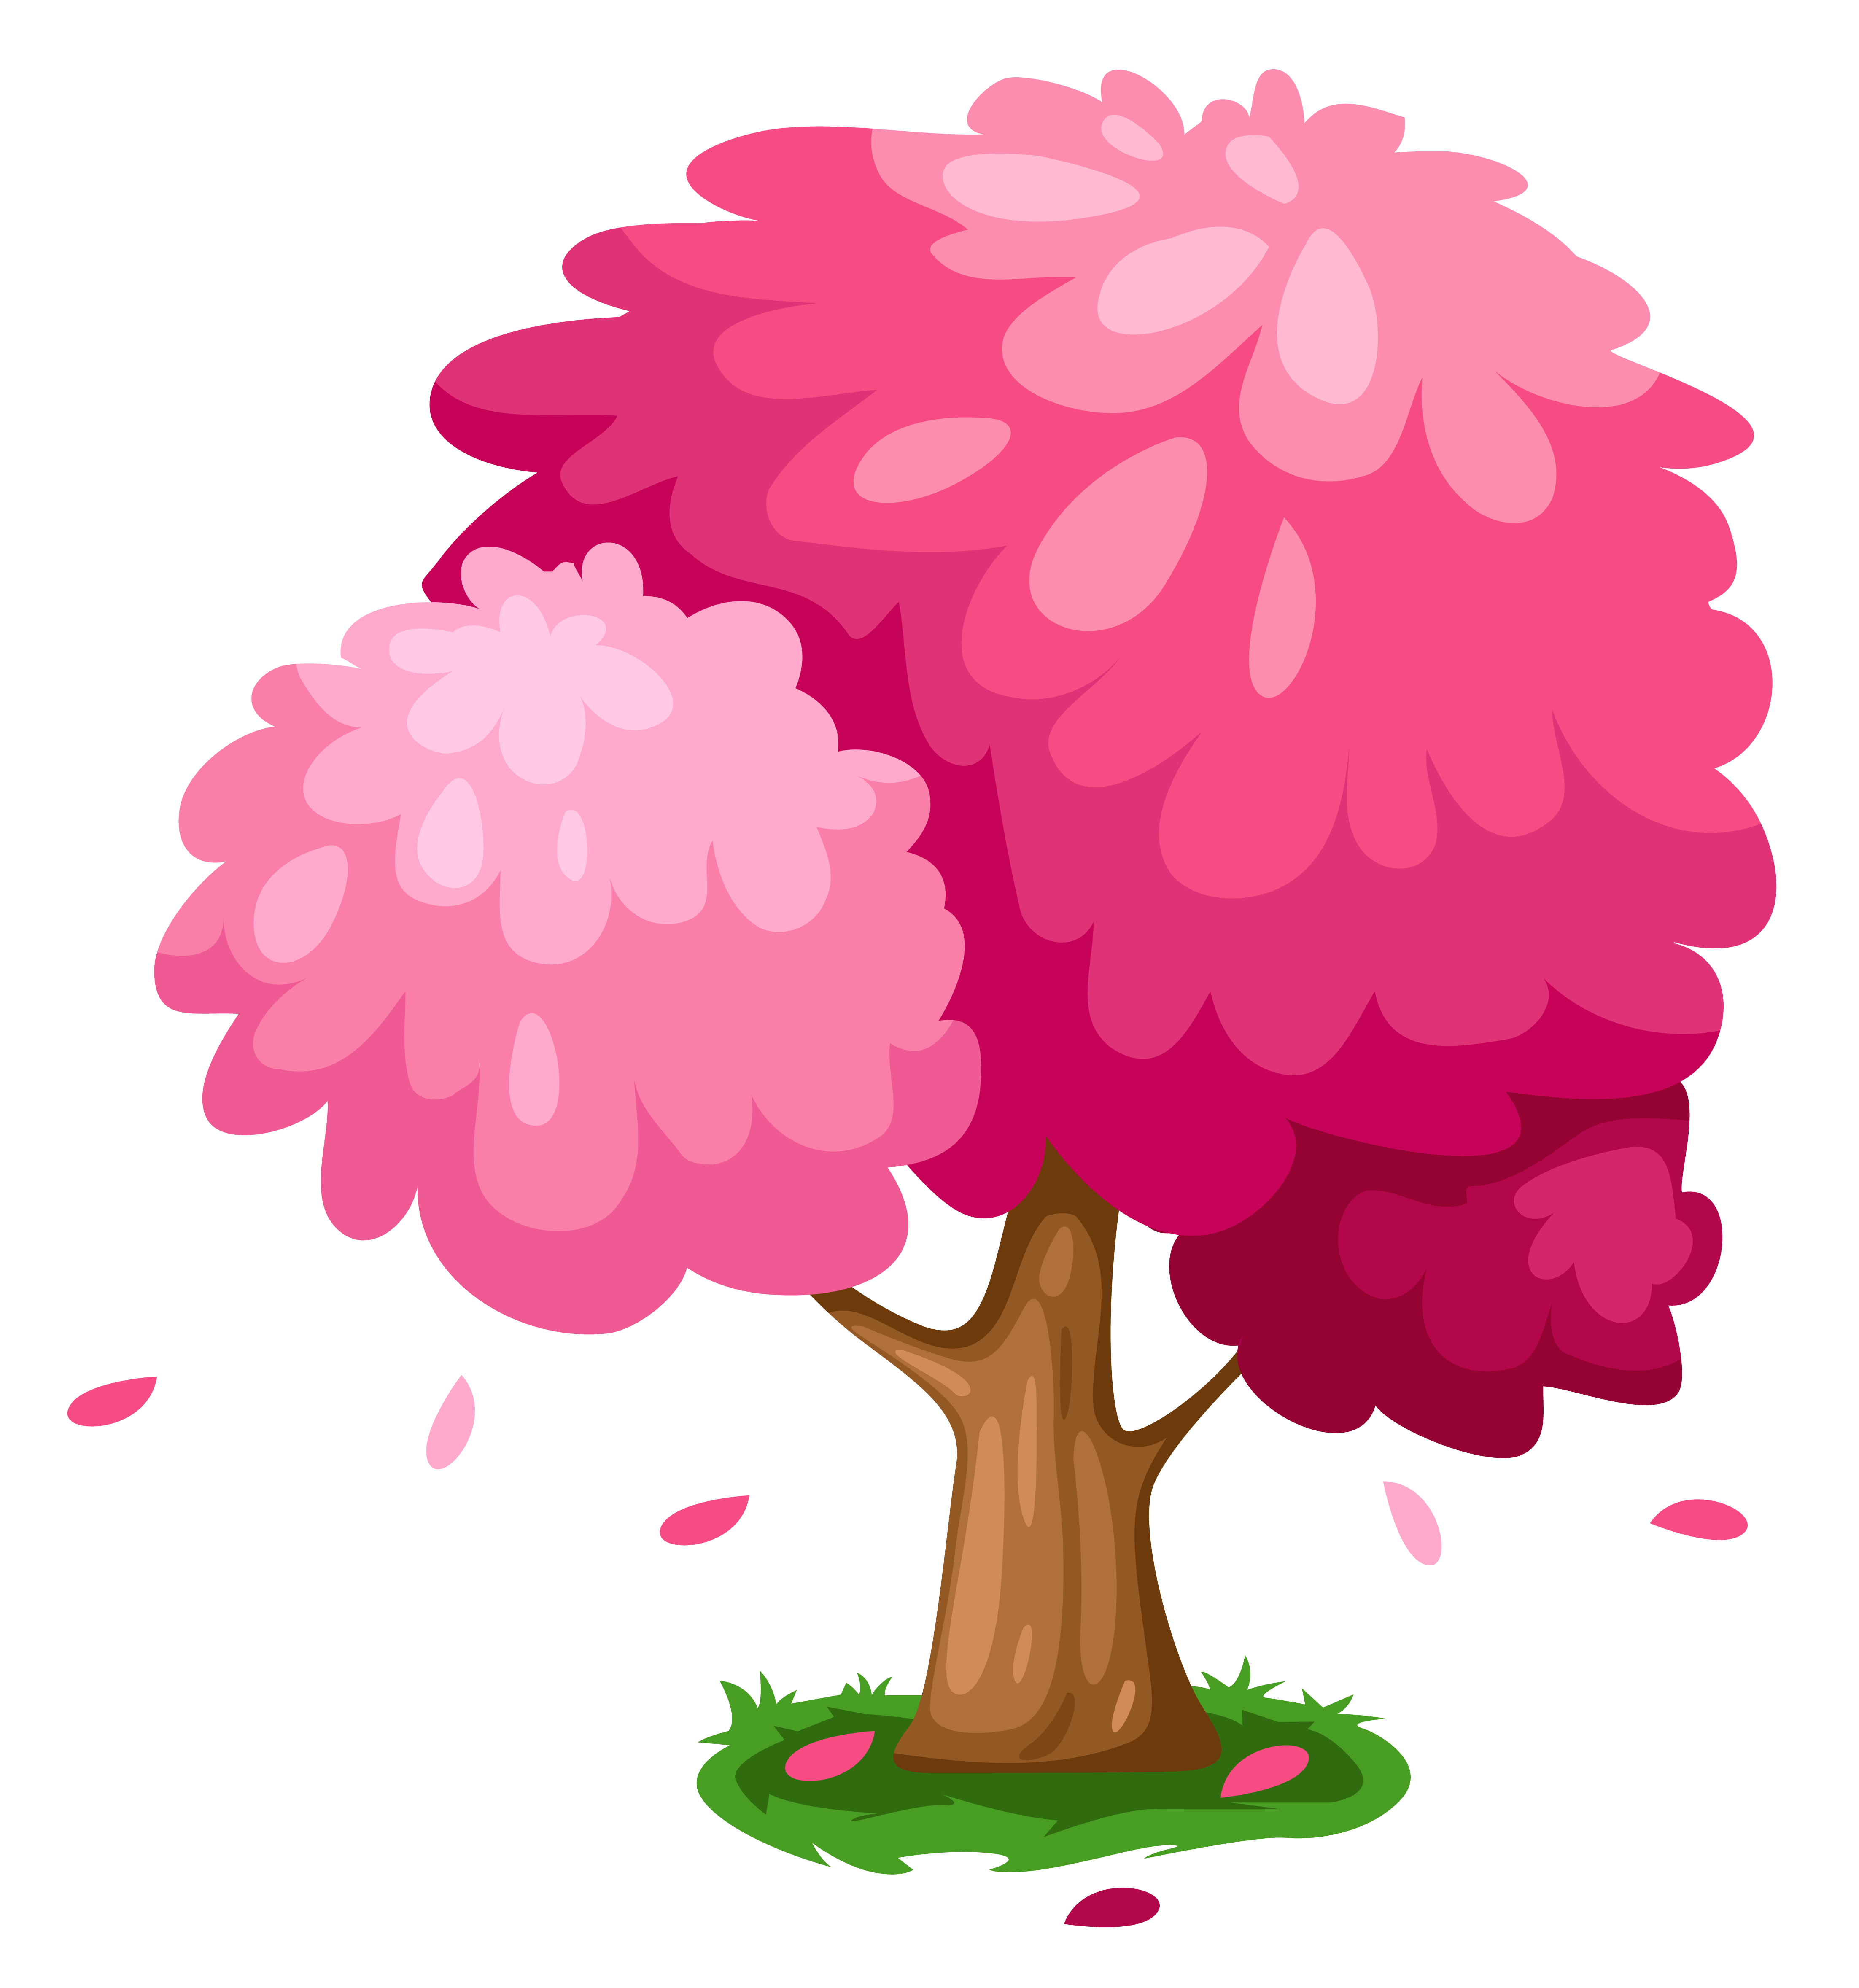 Pink flower tree clipart.